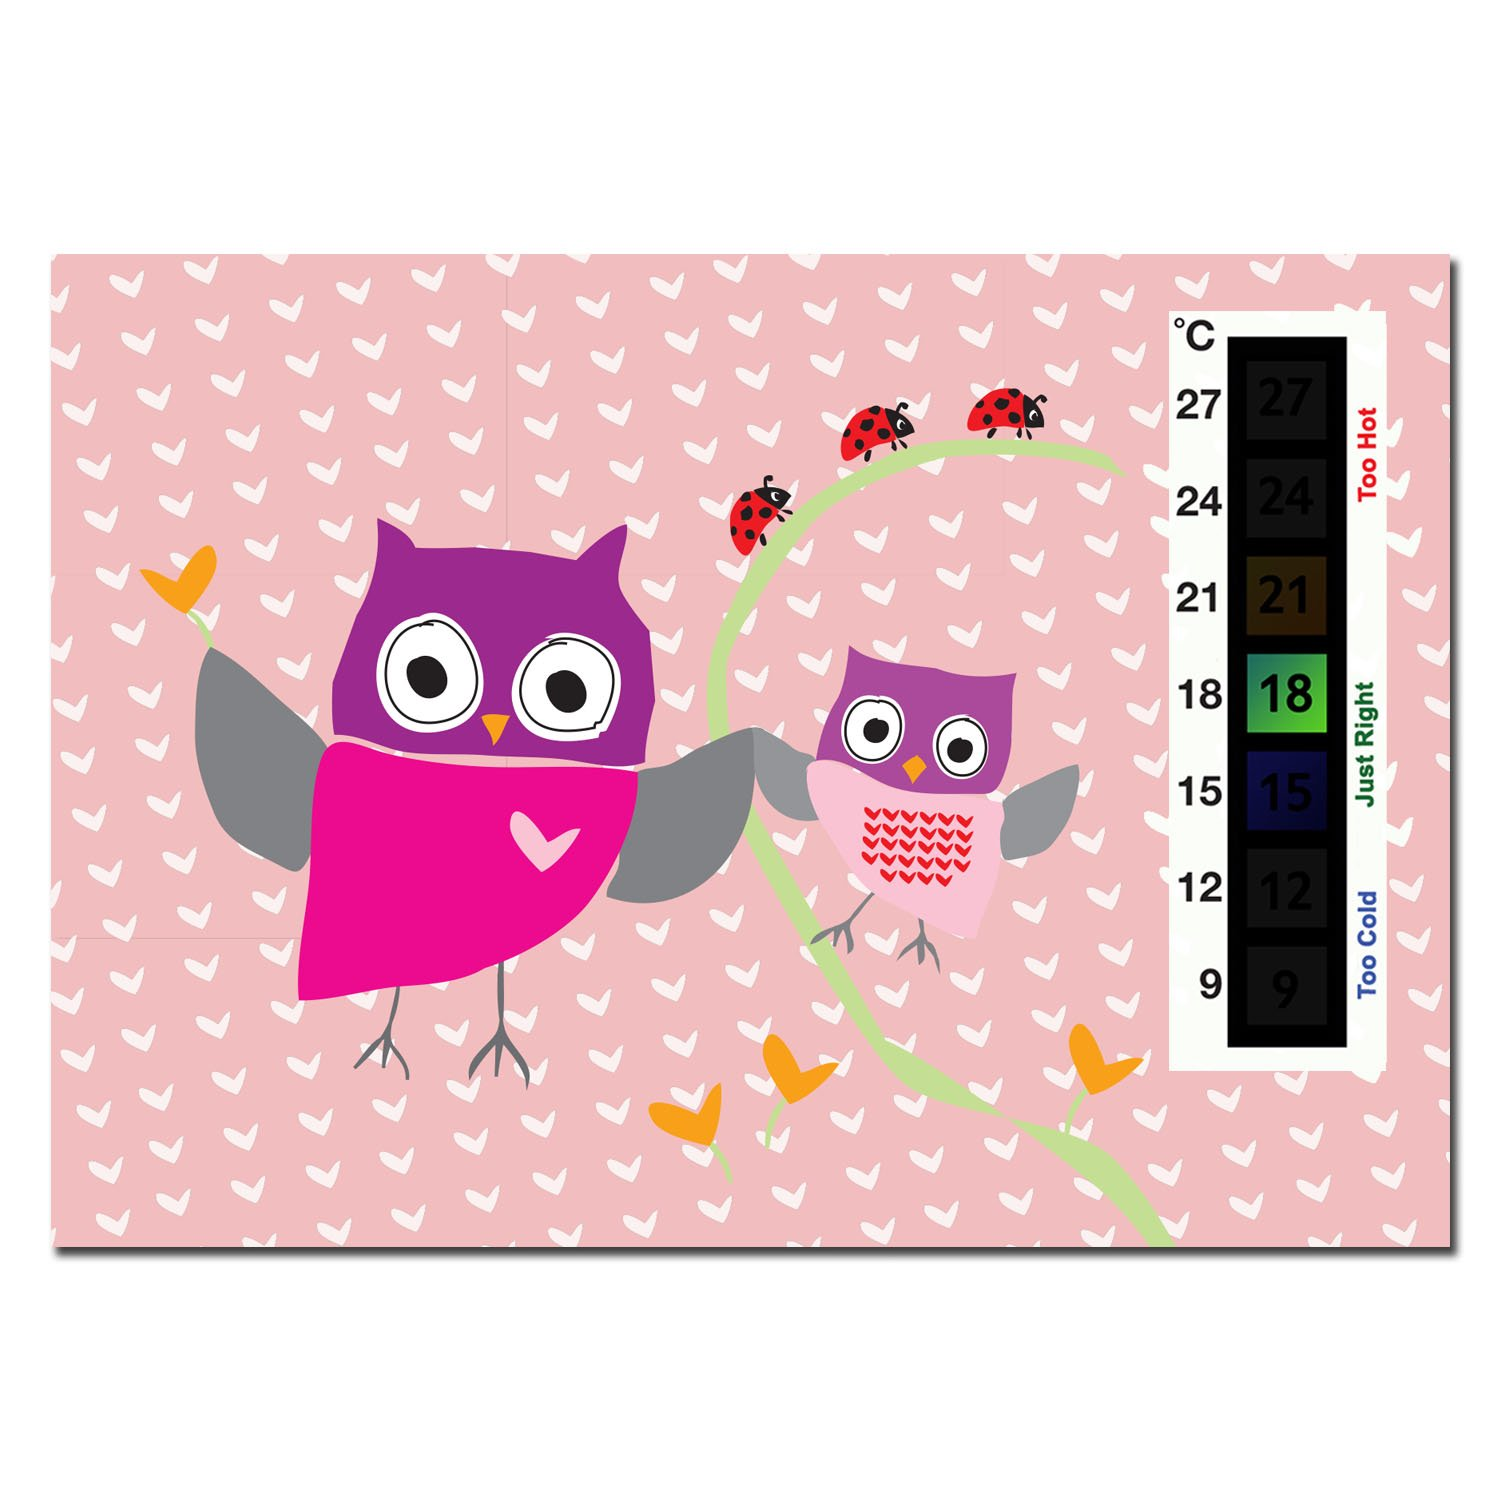 Baby Pink Owl & Ladybird Nursery Room Safety Temperature Thermometer Monitor Good Life Innovations